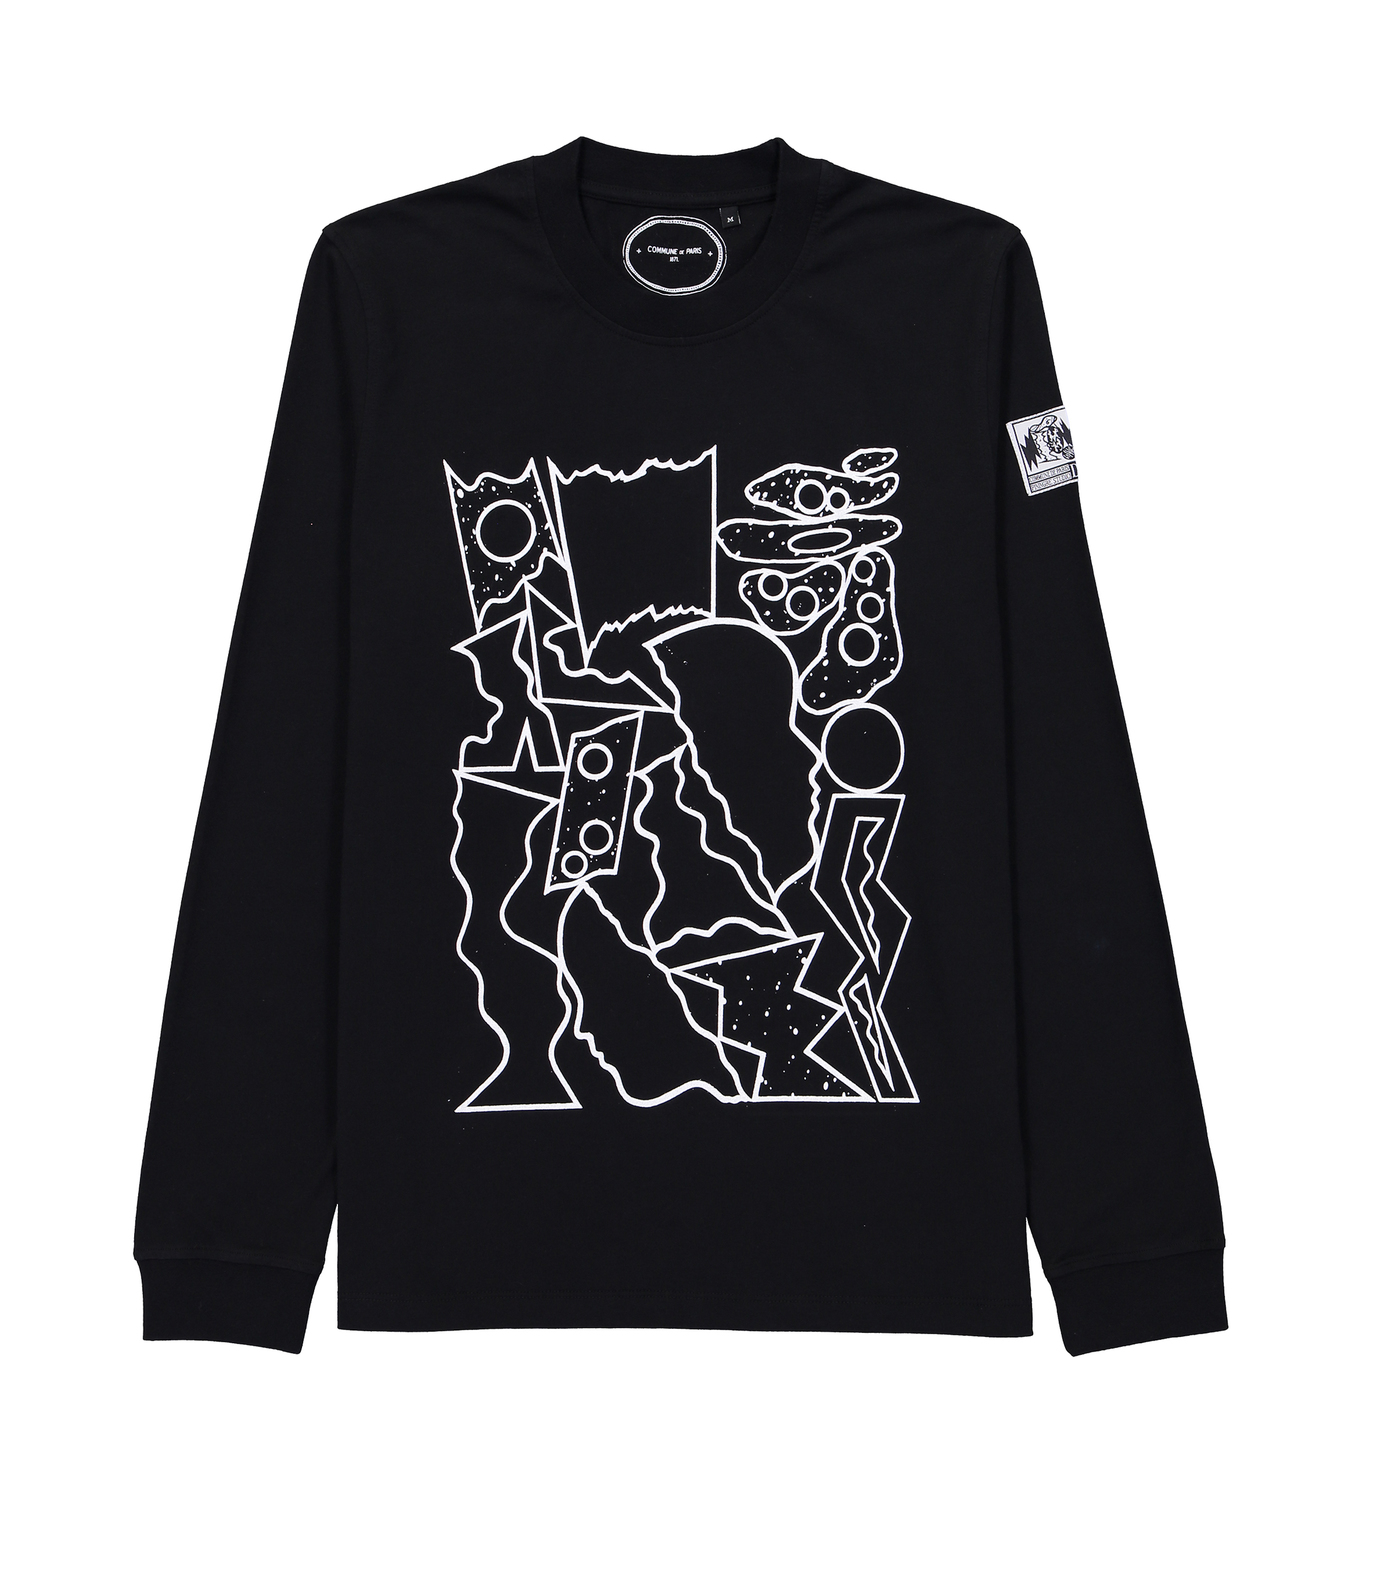 LONG SLEEVES CHAOS - Black